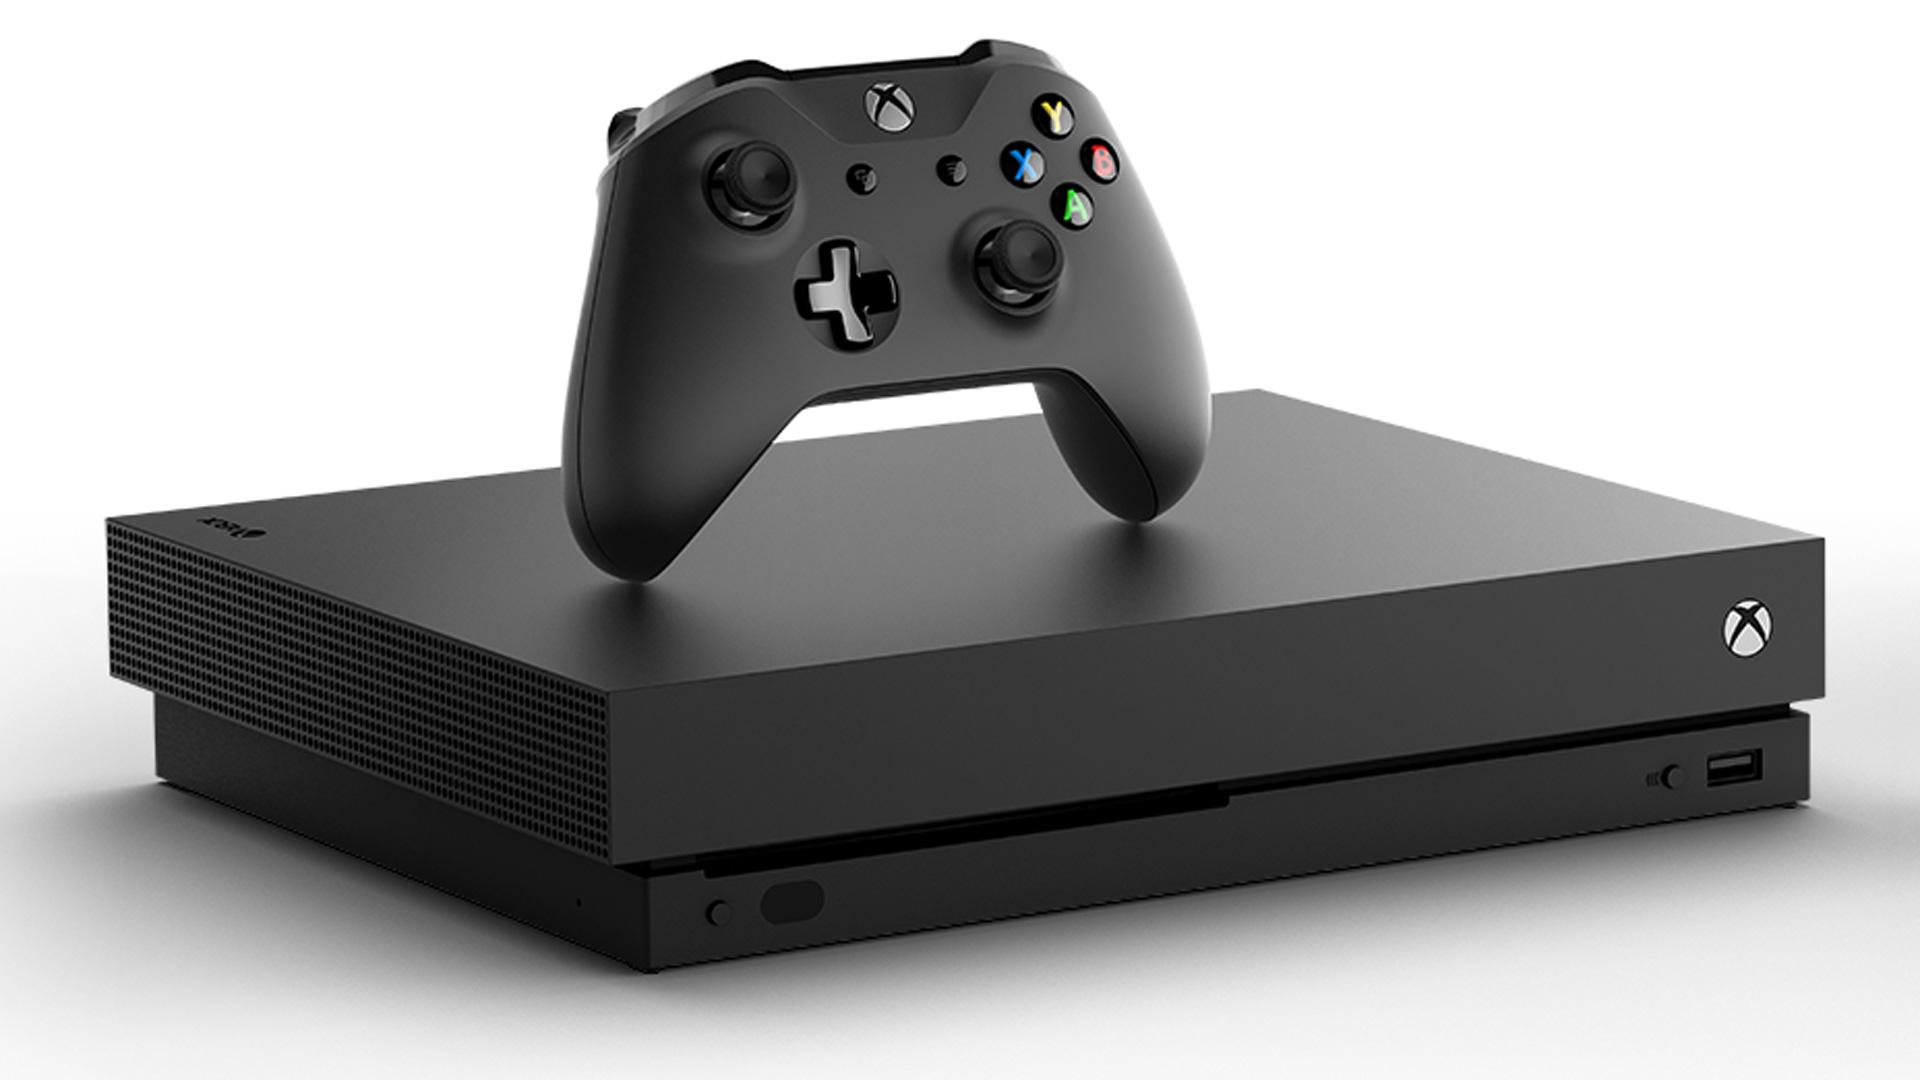 Contractors Have Listened To Inadvertently Recorded Audio From Xbox Owners' Homes